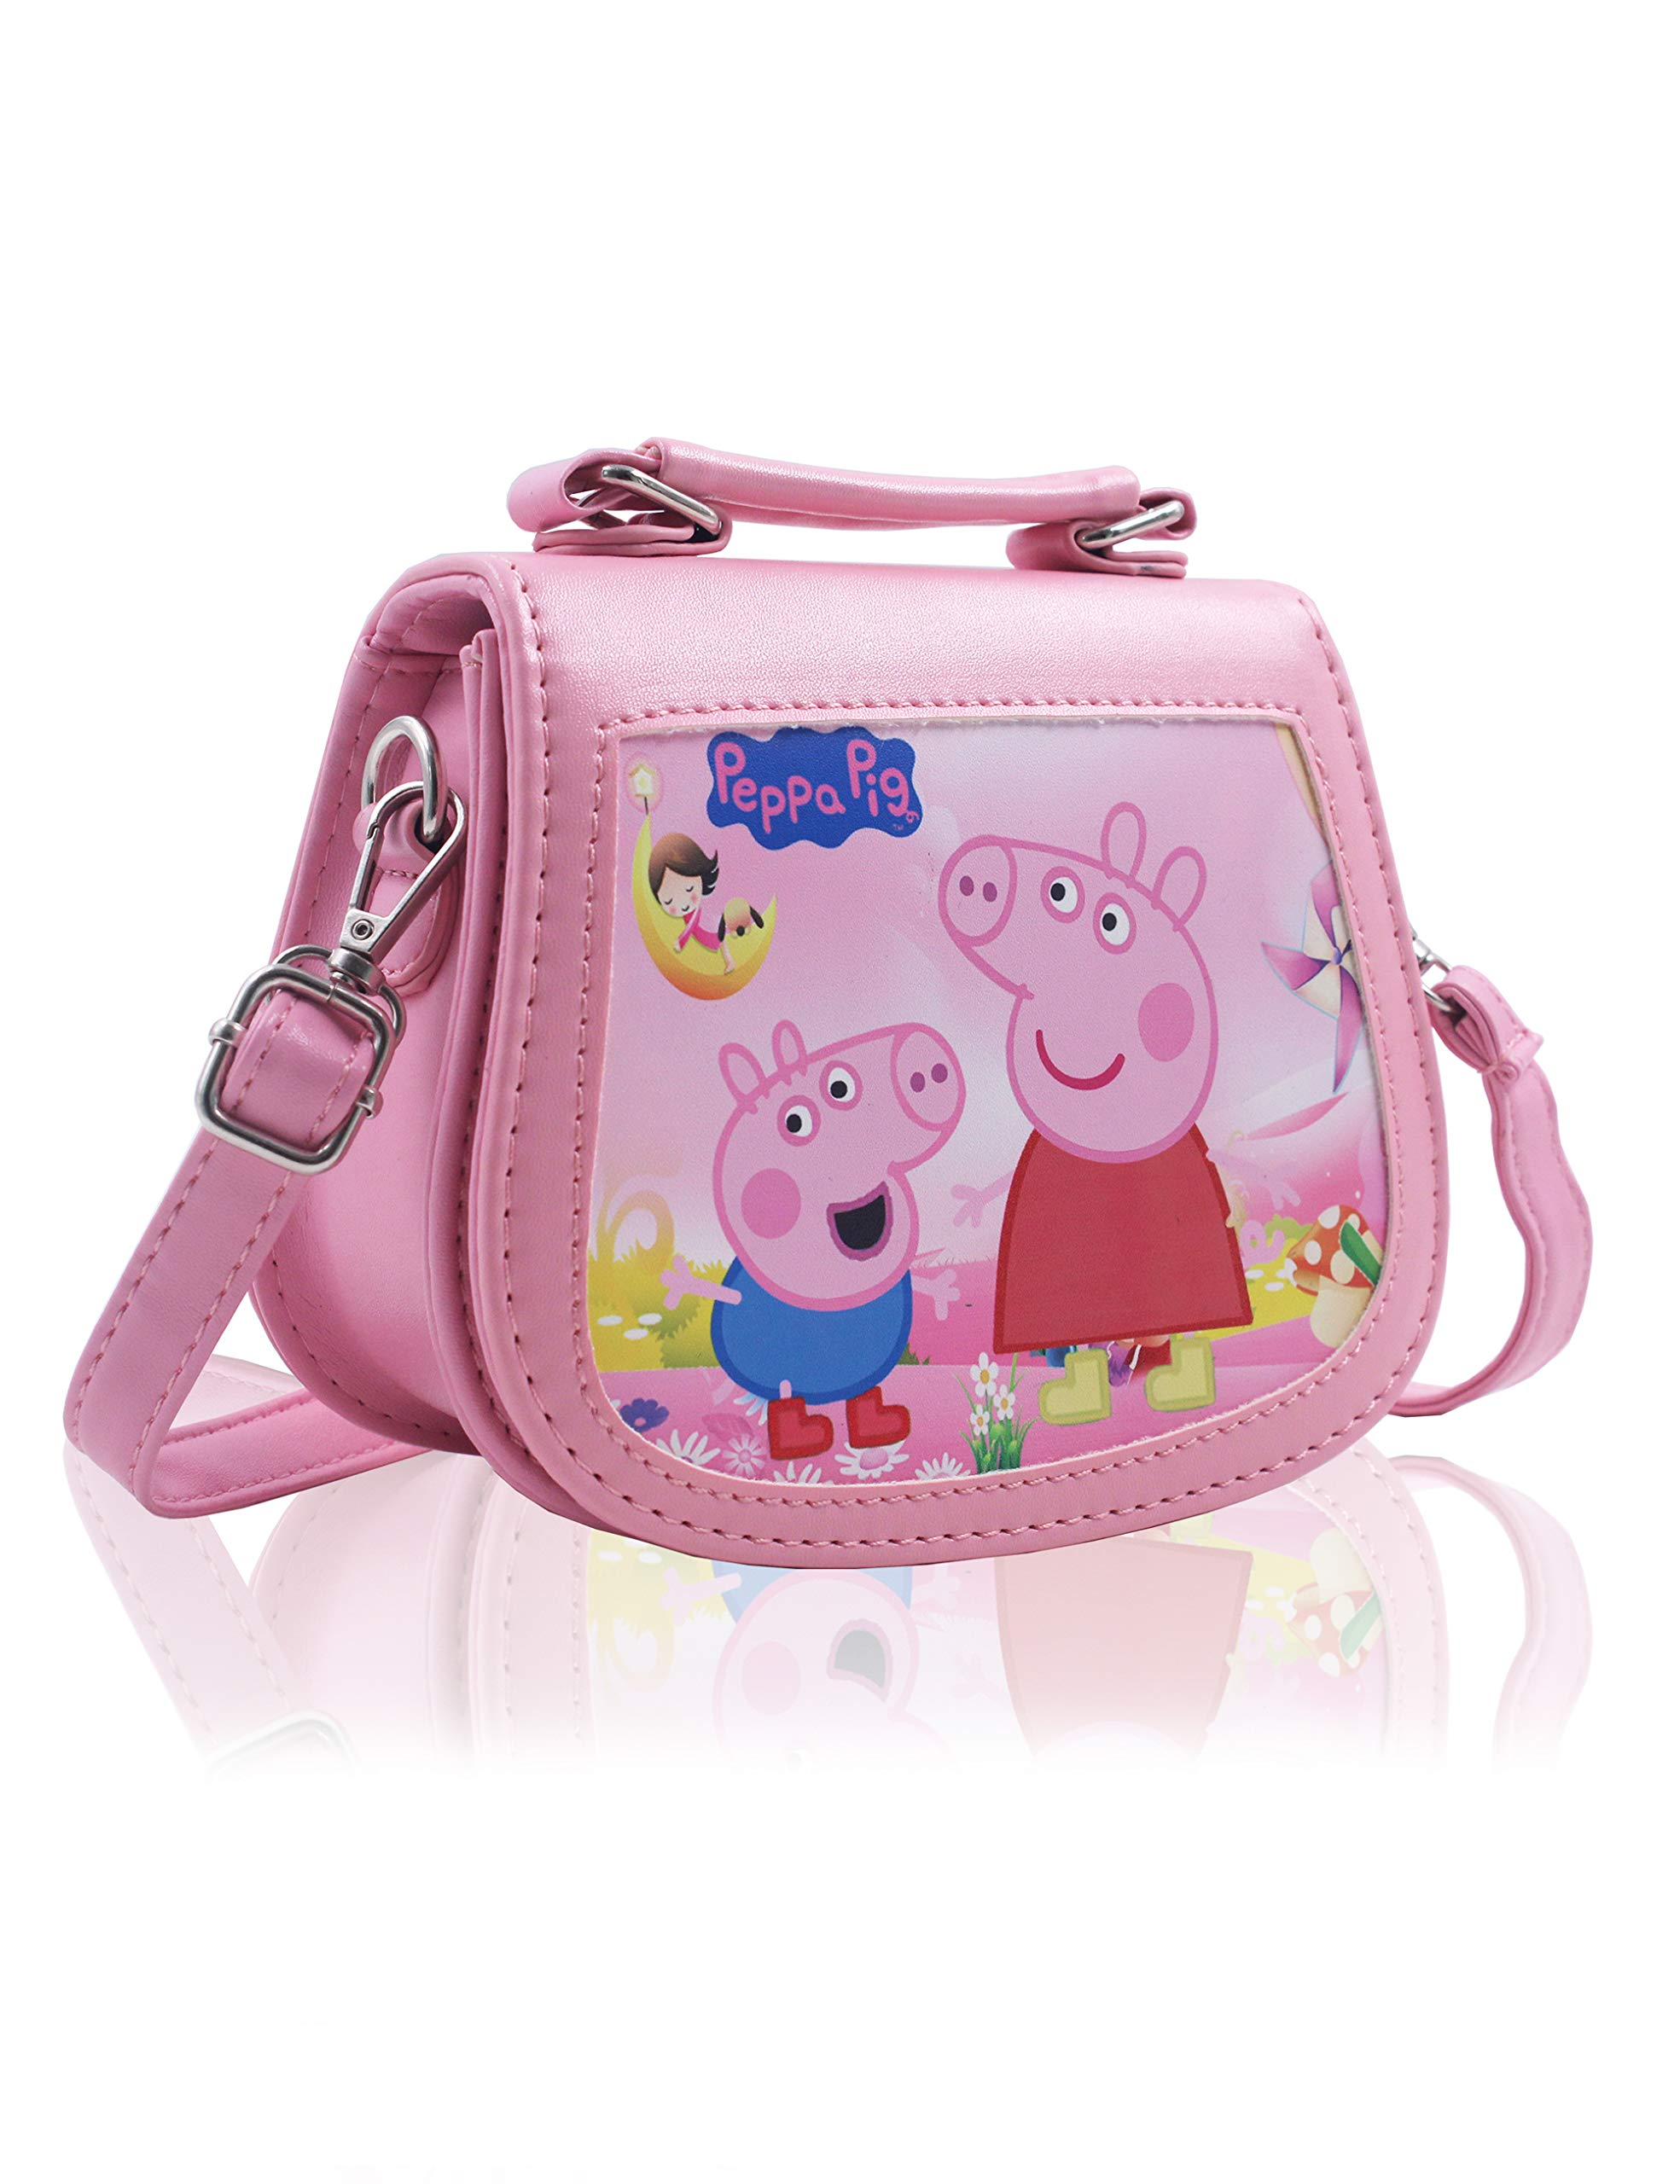 FINEX Little Pig Pink Premium PU Leather Small Crossbody Cute Shoulder Handbag Toy Purse Travel Bag for Toddler Children Kids Preschoolers Baby Little Girls Age 2-8 Years Old …